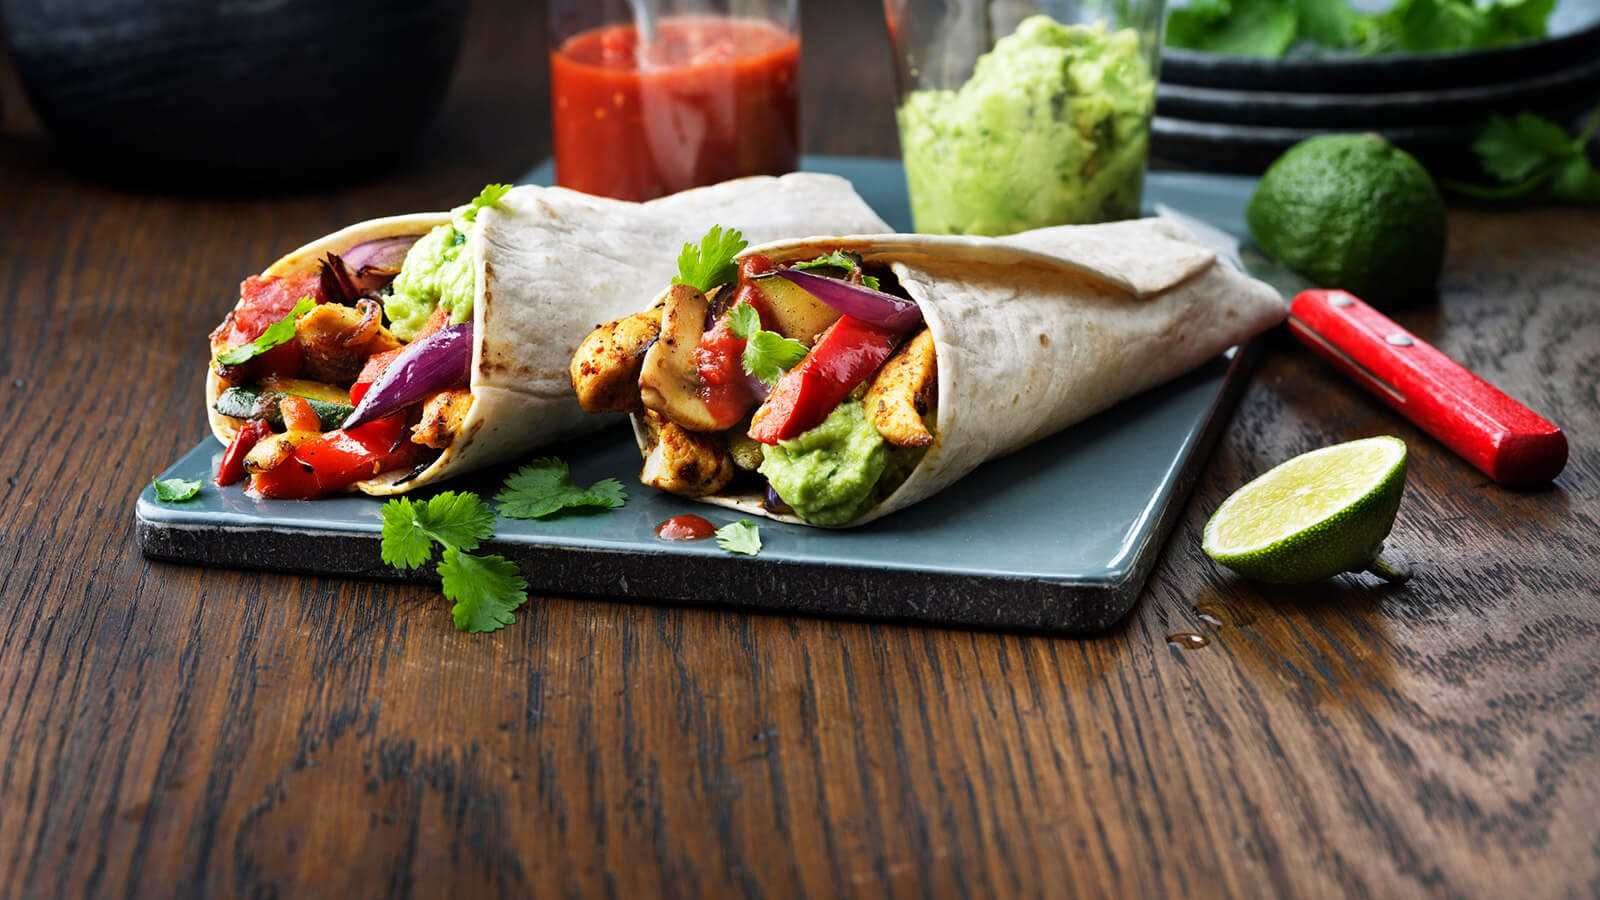 Fajita wraps with chicken and lots of vegetables